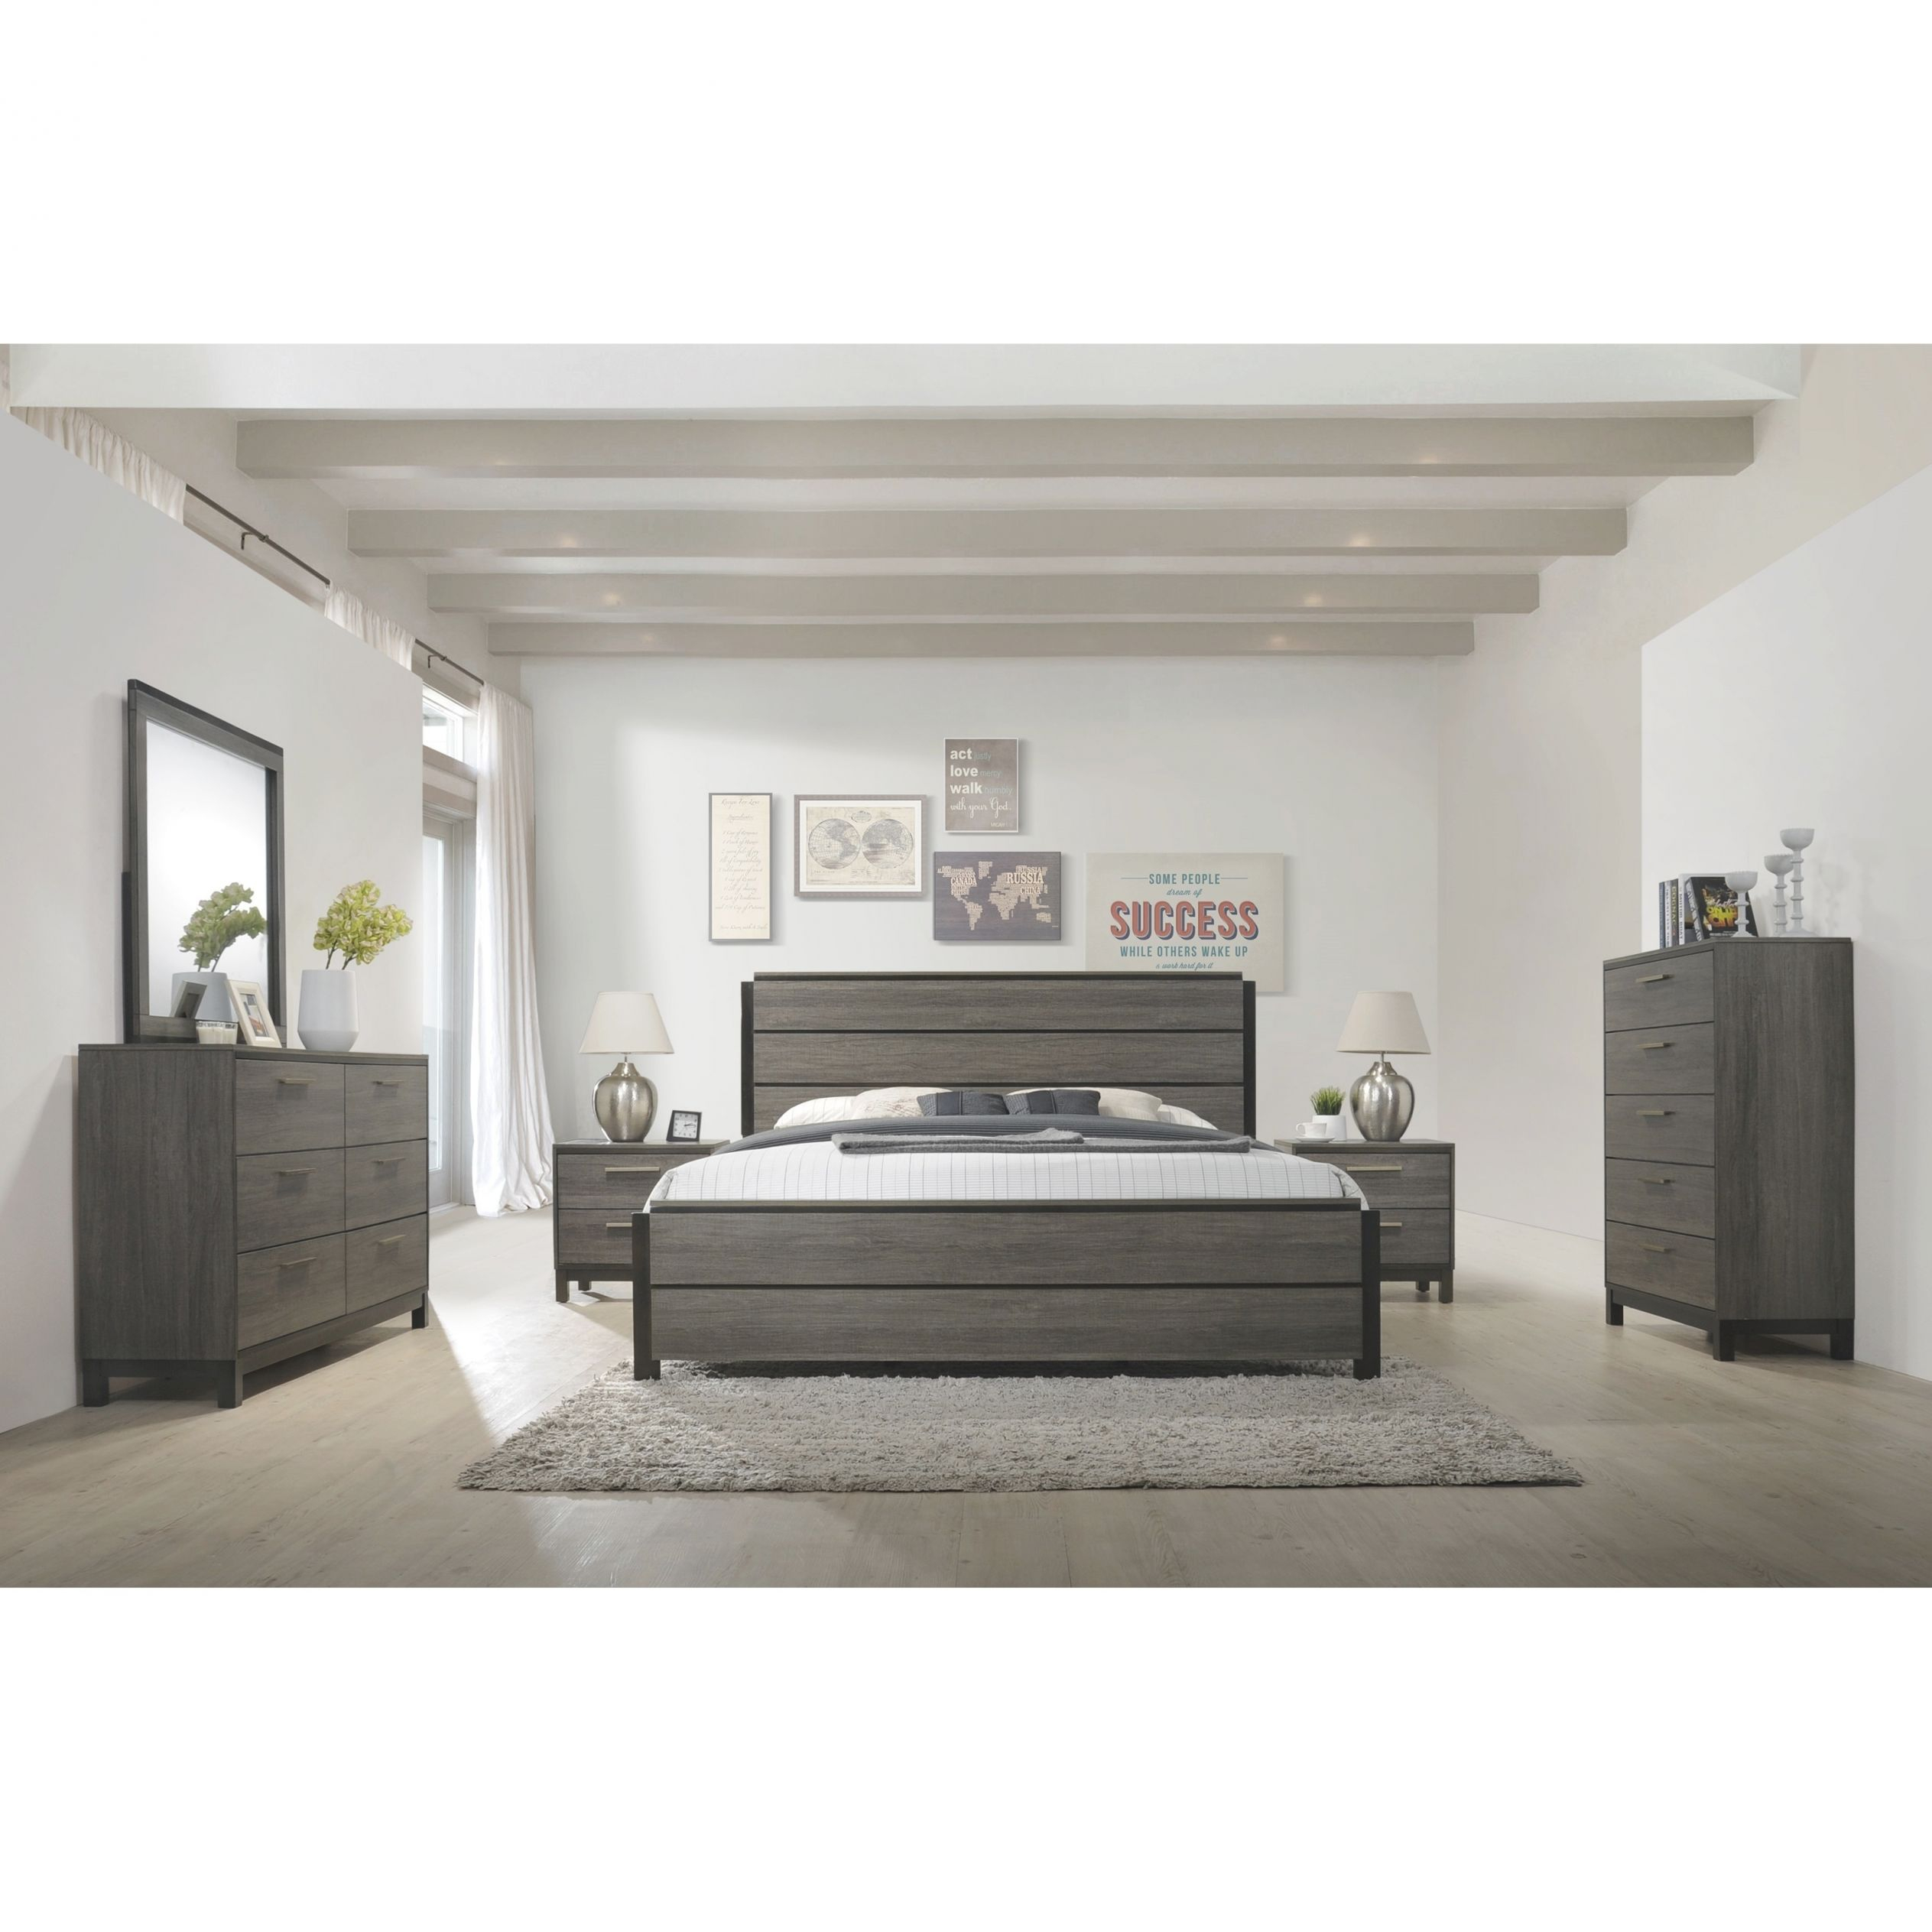 Ioana 187 Antique Grey Finish Wood Bed Room Set, Queen Size Bed, Dresser, Mirror, 2 Night Stands, Chest in Luxury Bedroom Set Queen Size